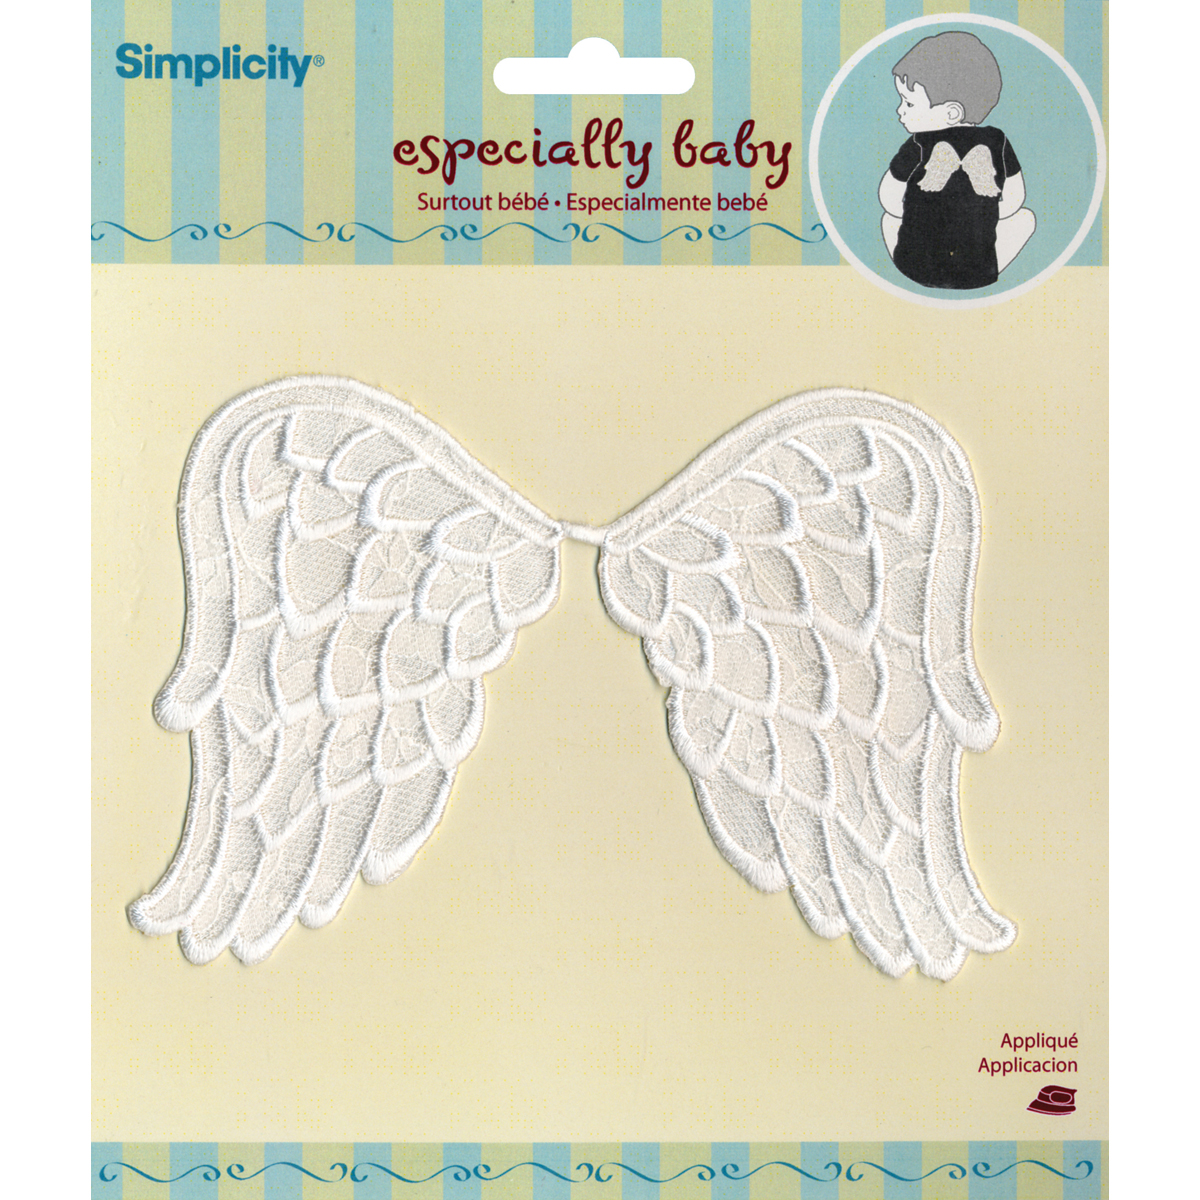 Simplicity Especially Baby Iron-On Applique-White Angel Wings